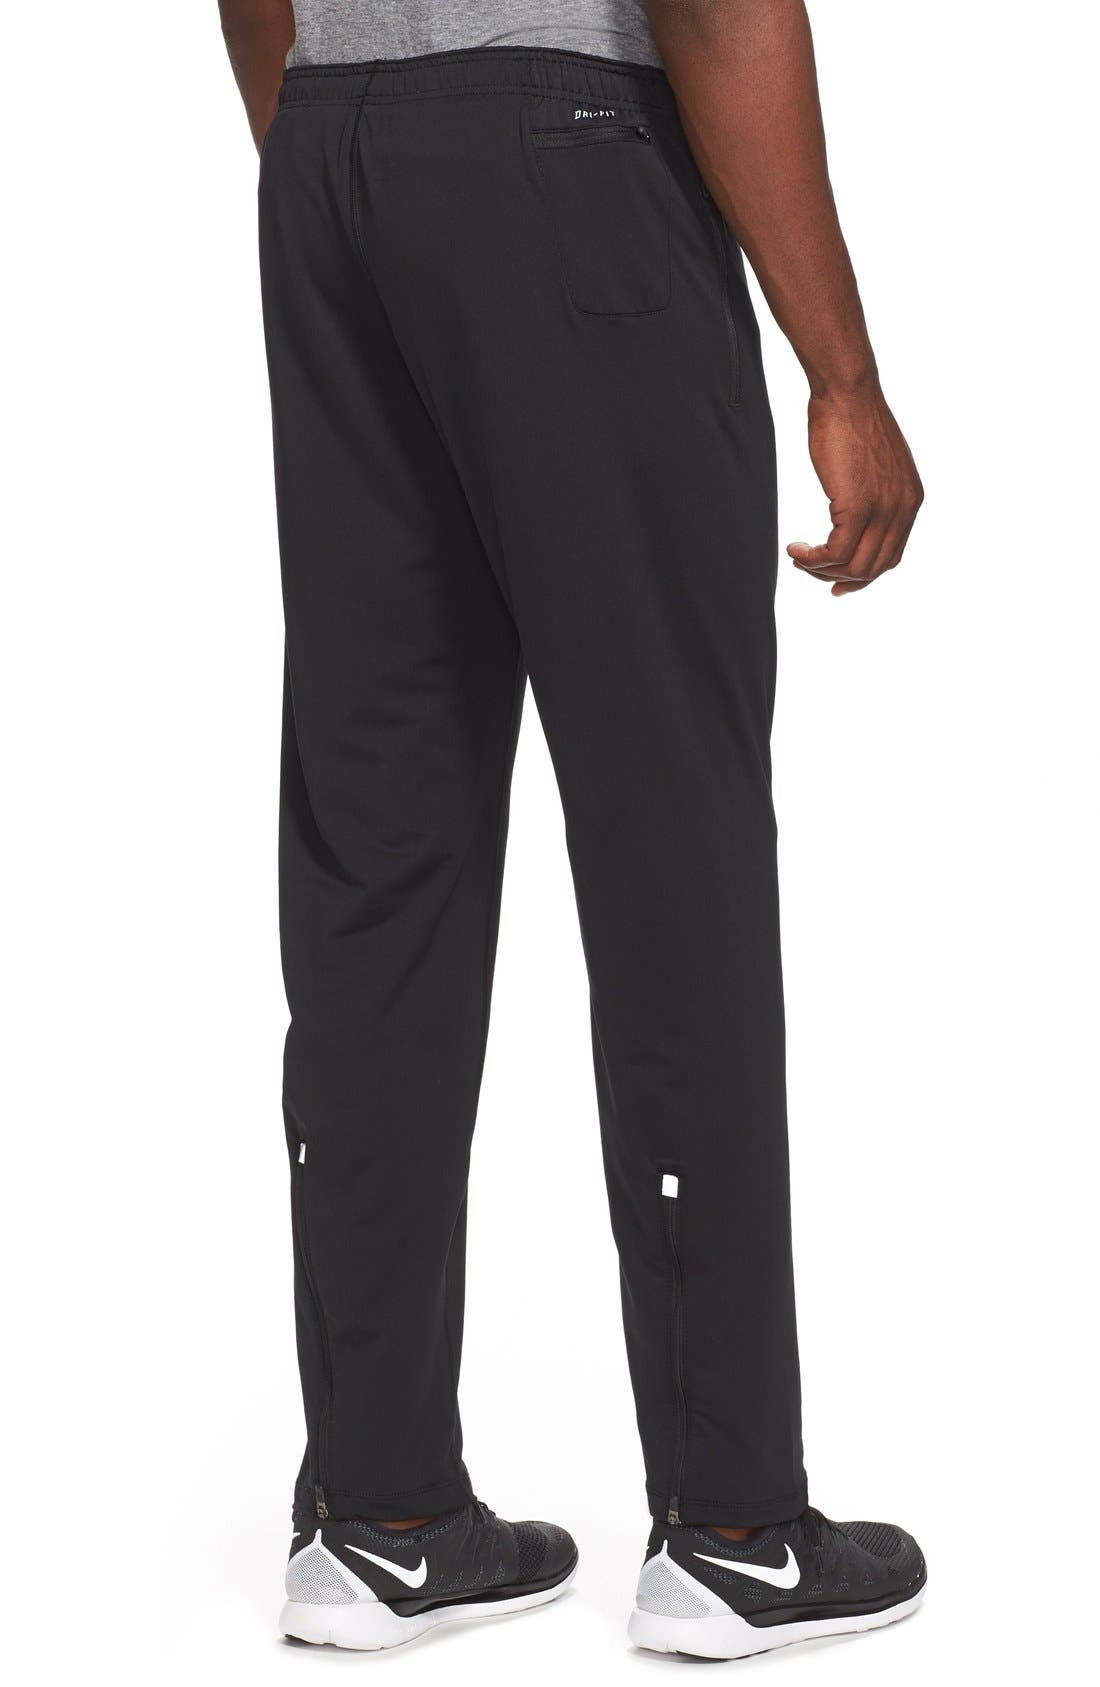 'Y20' Tapered Fit Dri-FIT Running Stretch Pants,                             Alternate thumbnail 4, color,                             010